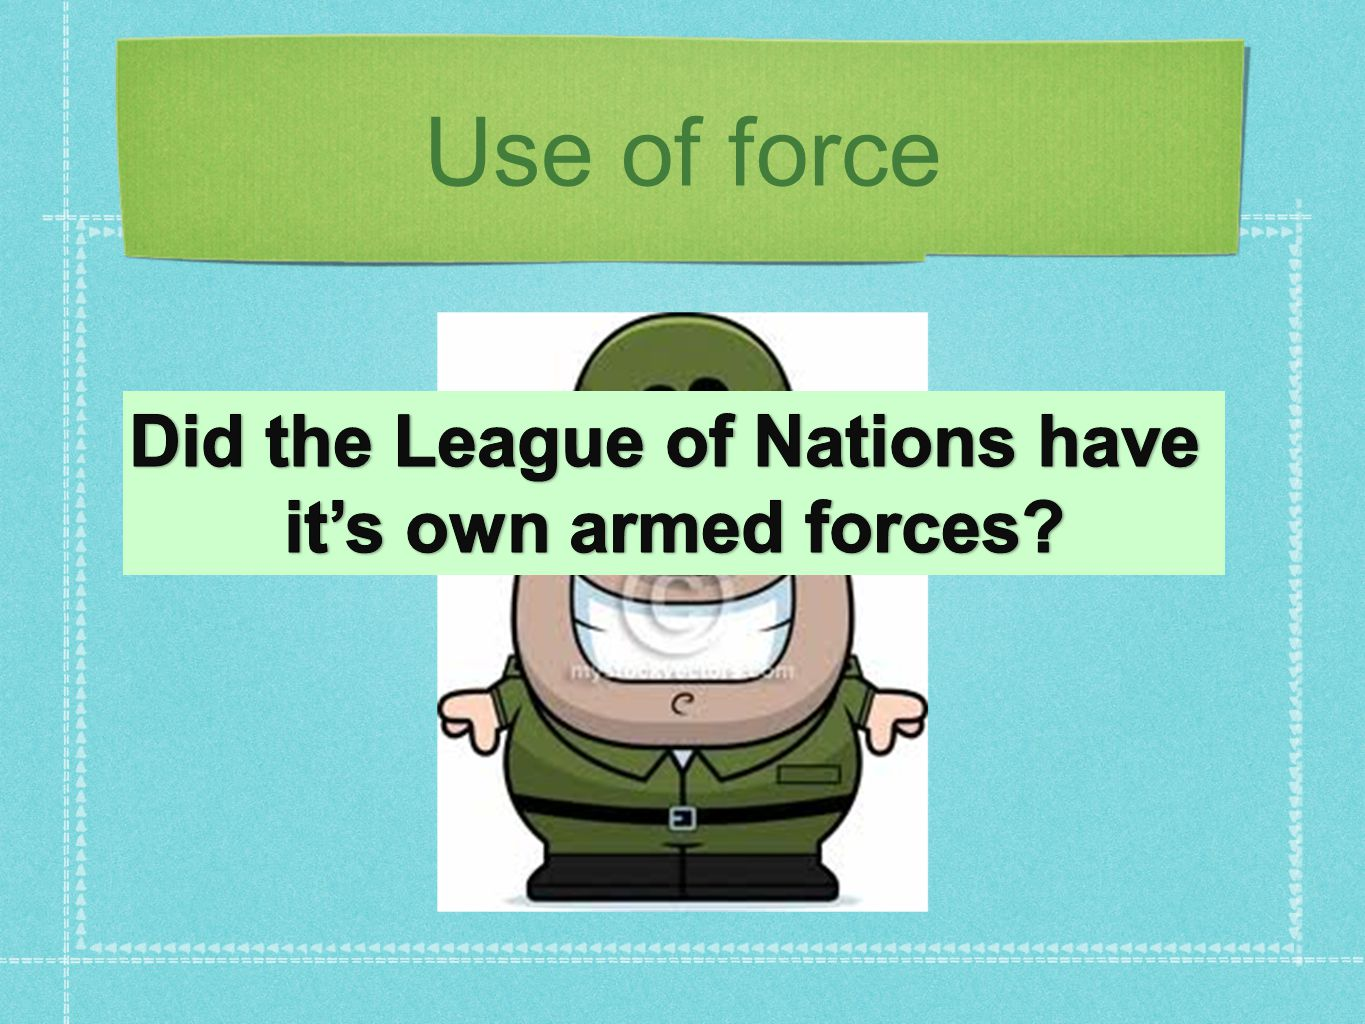 Did the League of Nations have